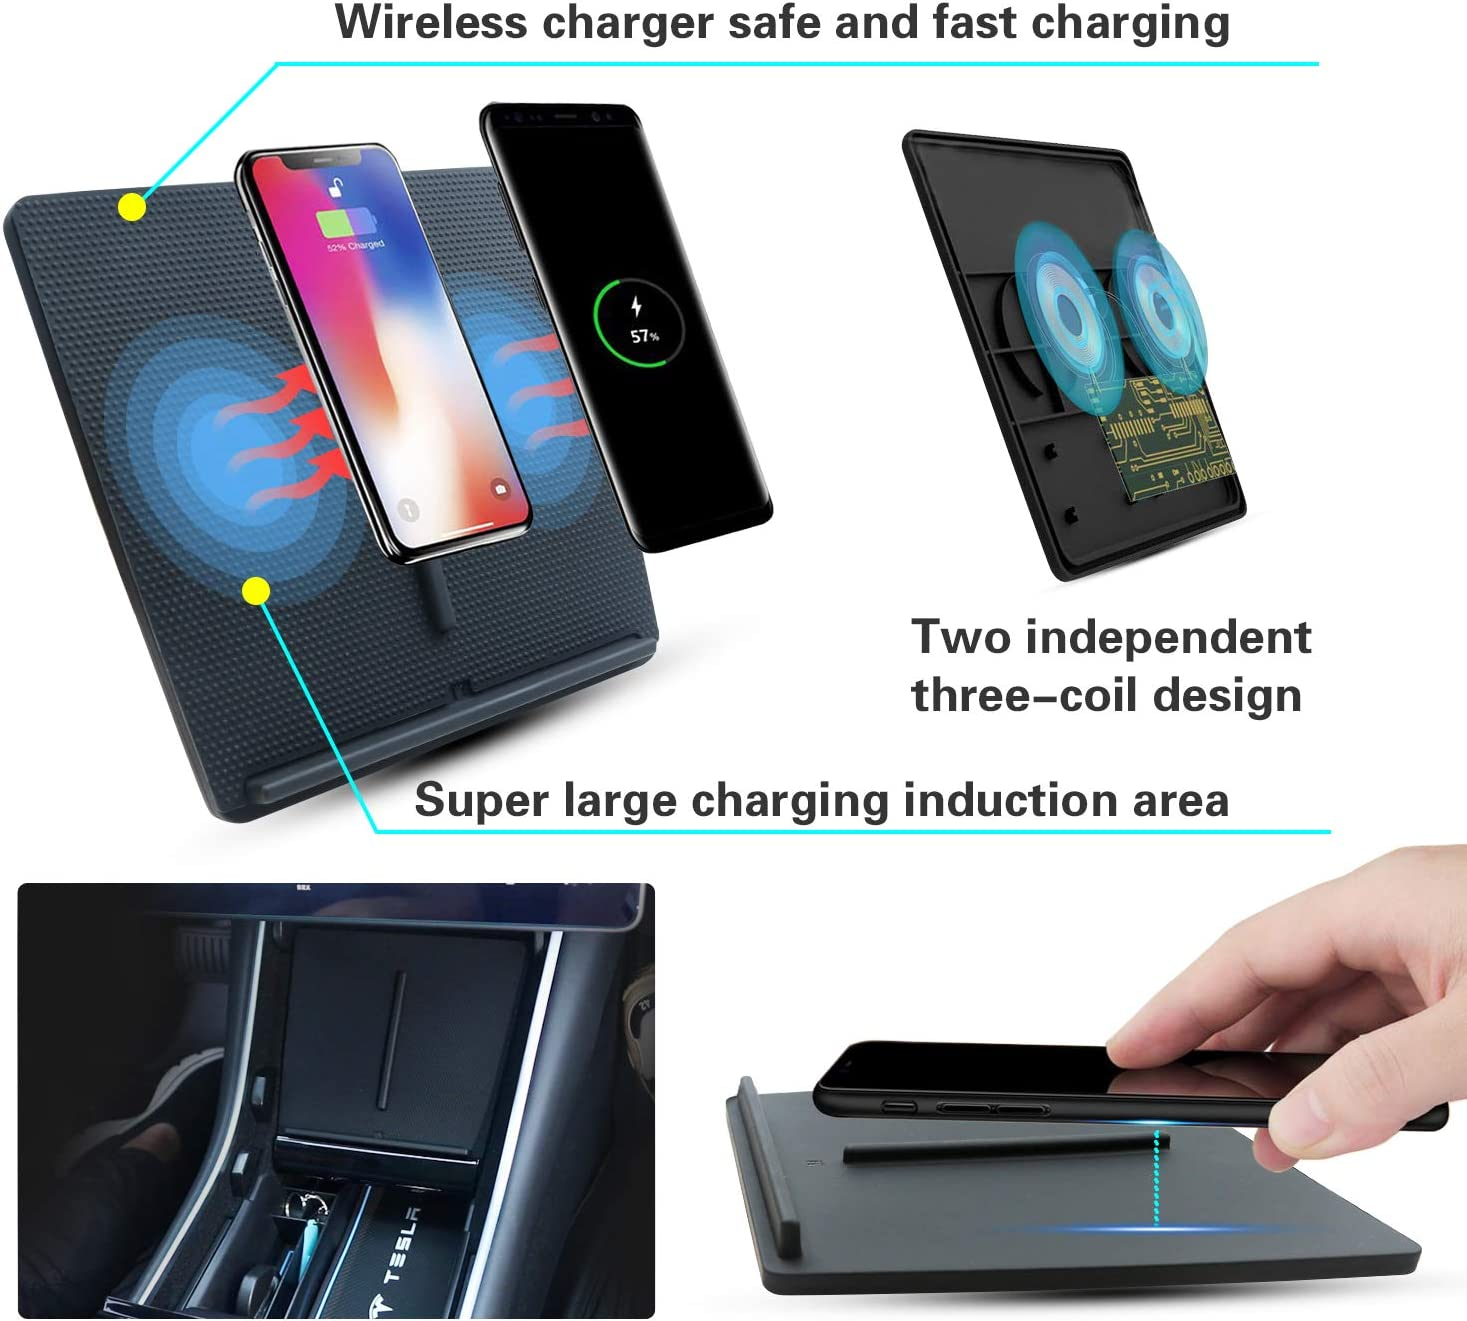 YEE PIN M3 Center Console Smartphone Charging Pad for Any Qi Enable Phone Upgraded Tesla 3 Charging Pad Wireless Phone Charger Model 3 Wireless Charger for Tesla Model 3 2018 2019